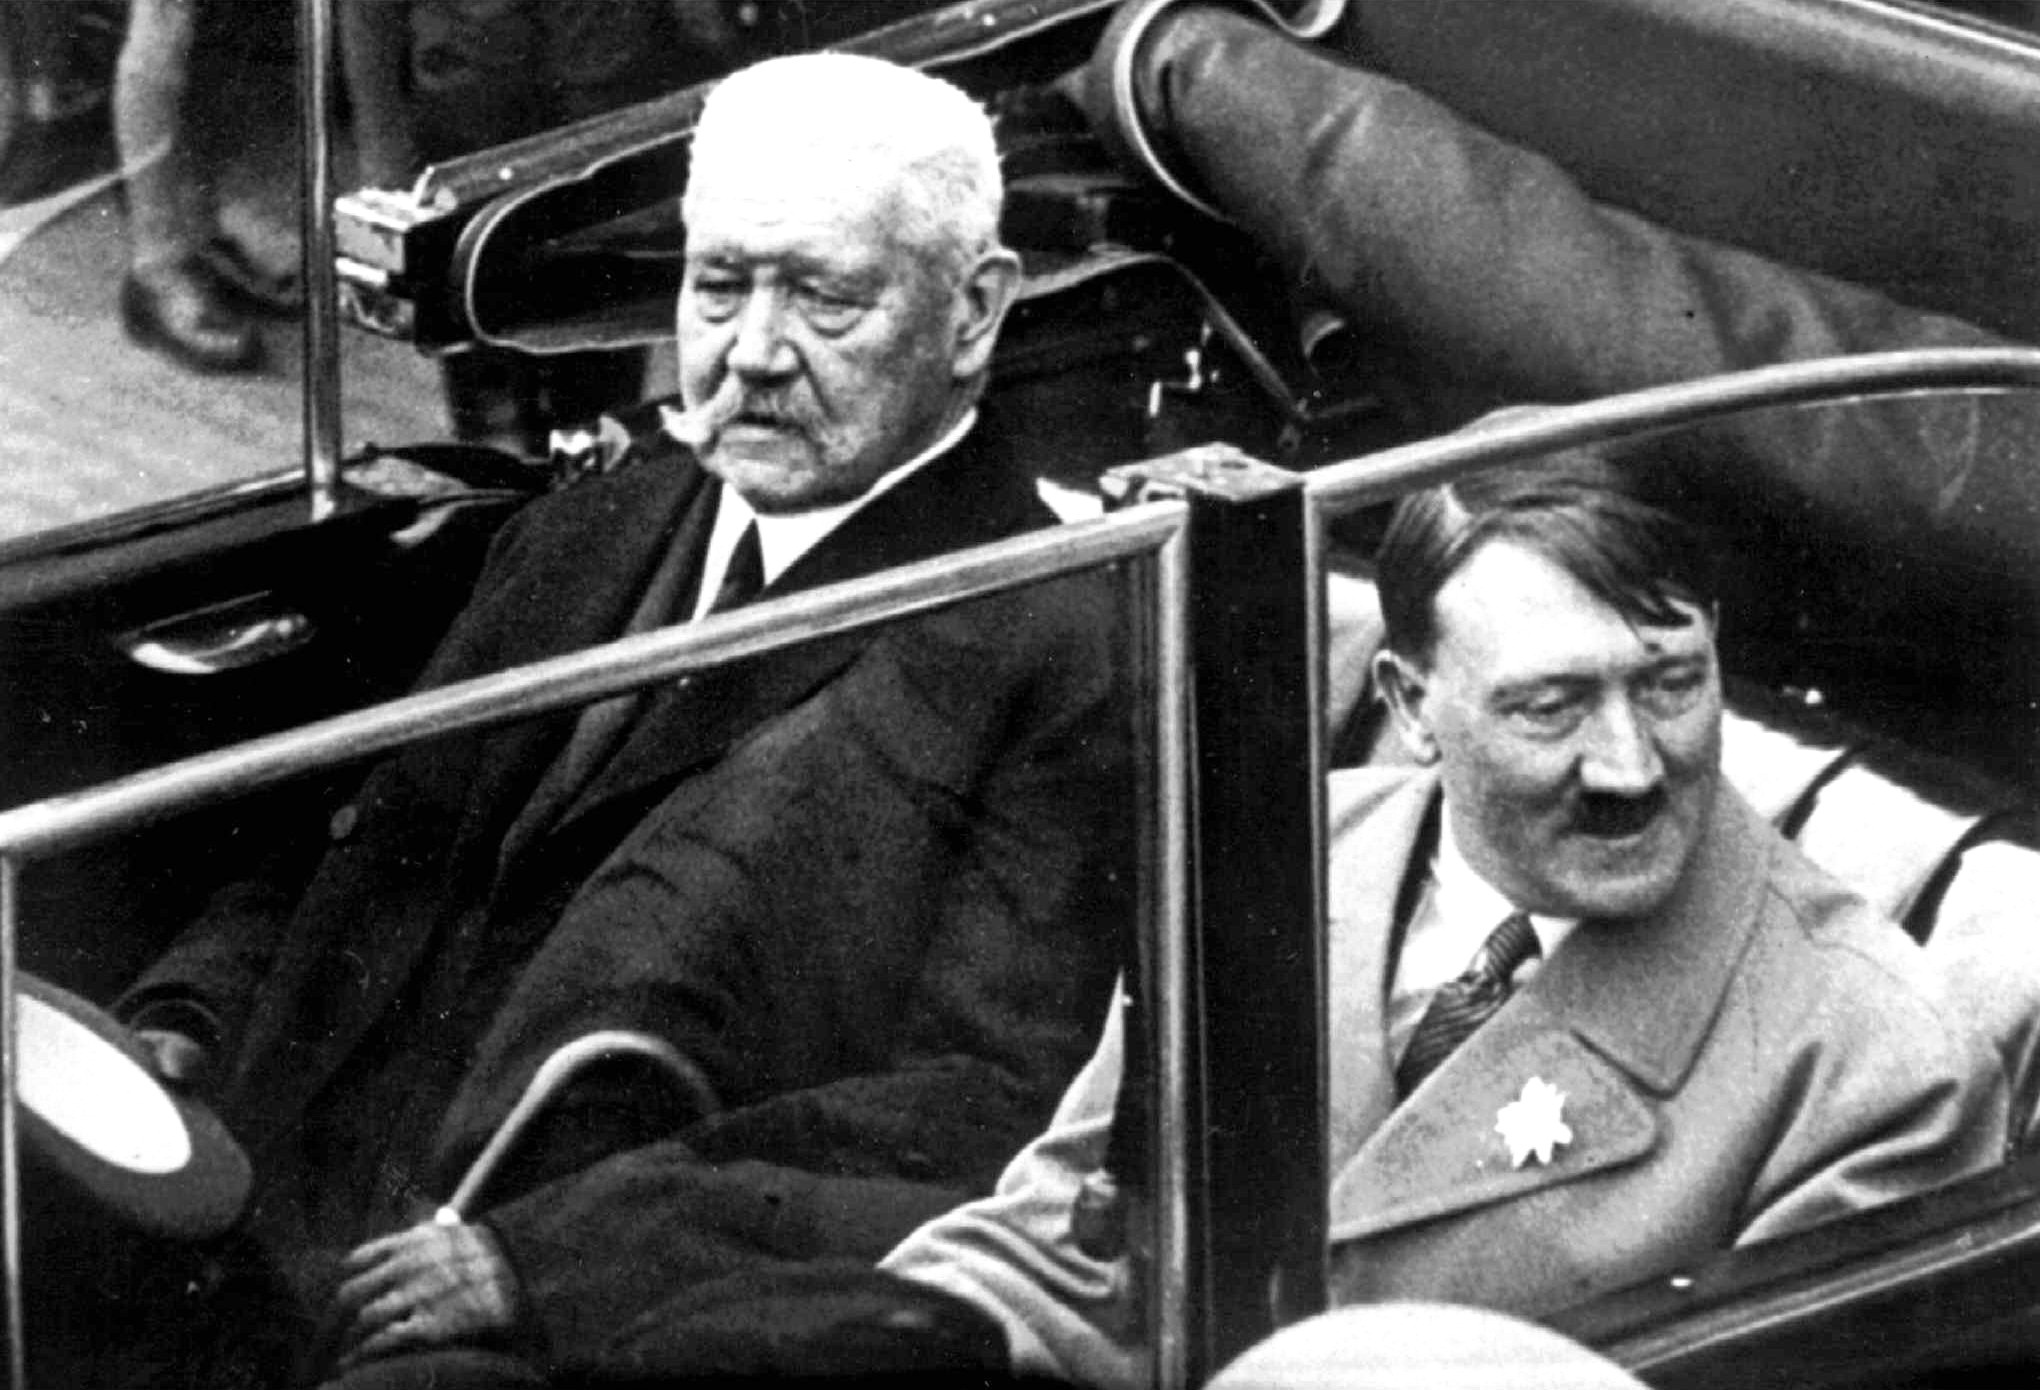 Paul von Hindenburg, Adolf Hitler